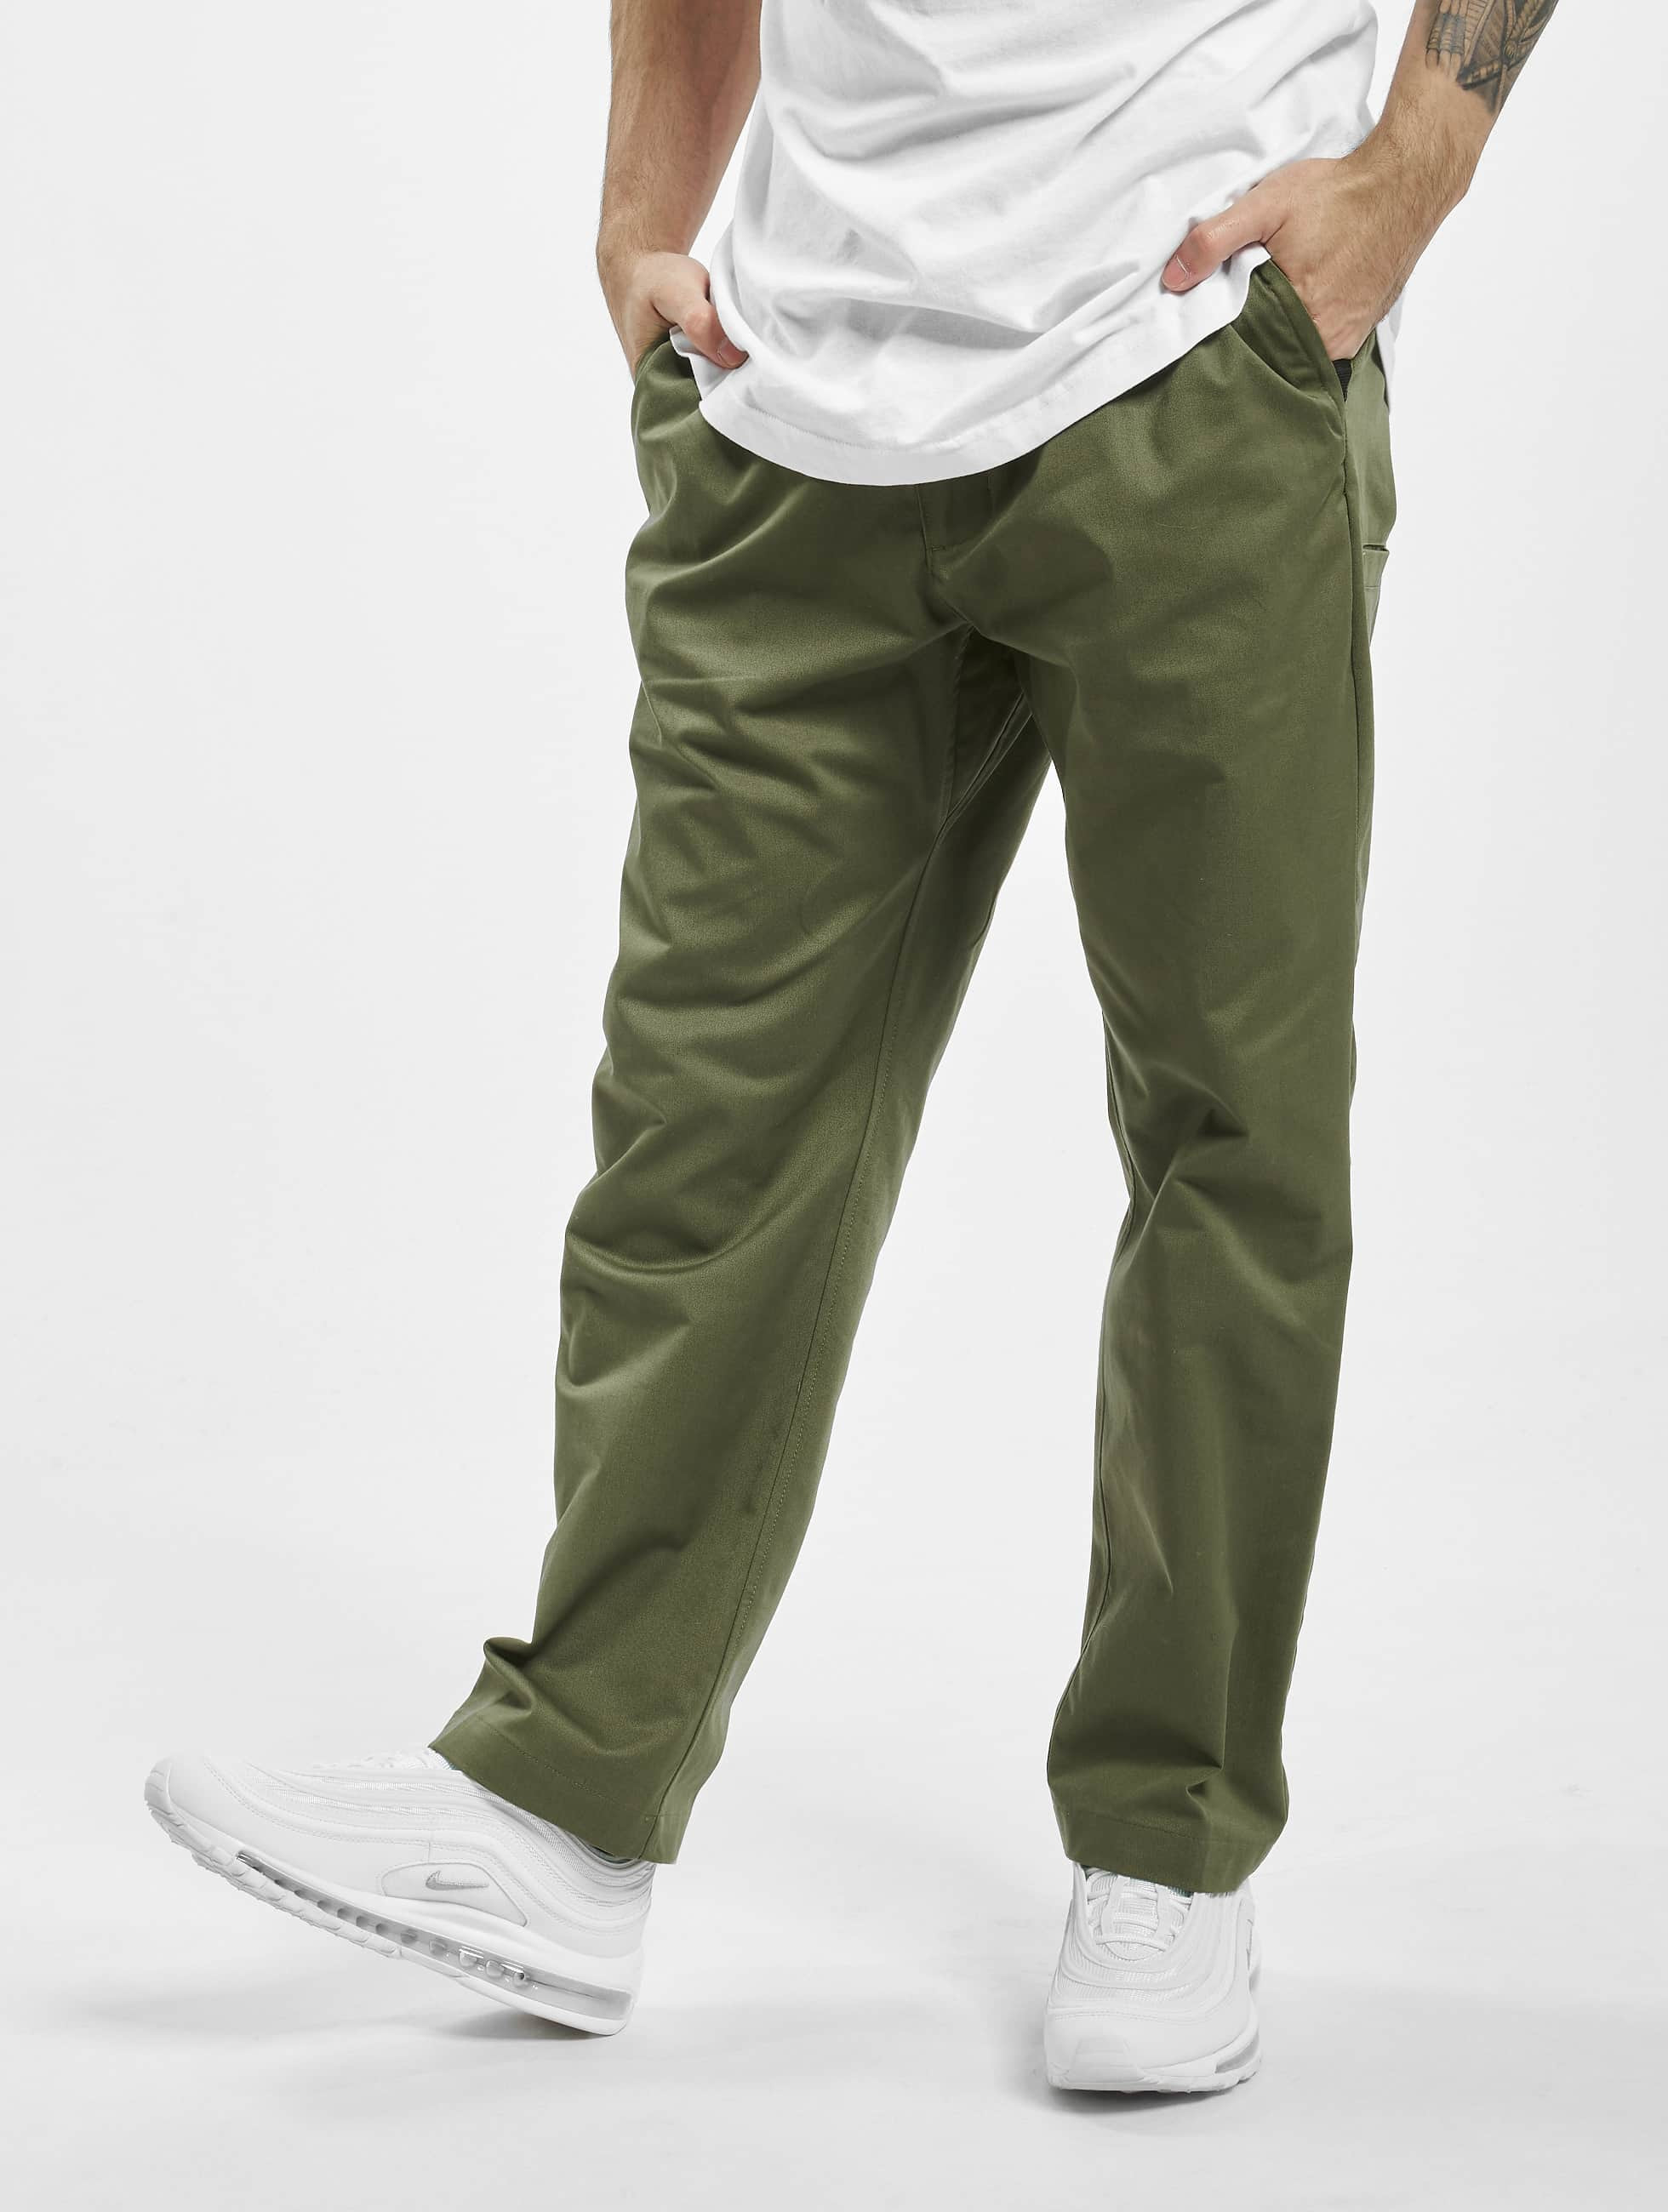 Nike SB | Dry Pull On olive Homme Pantalon chino 711745